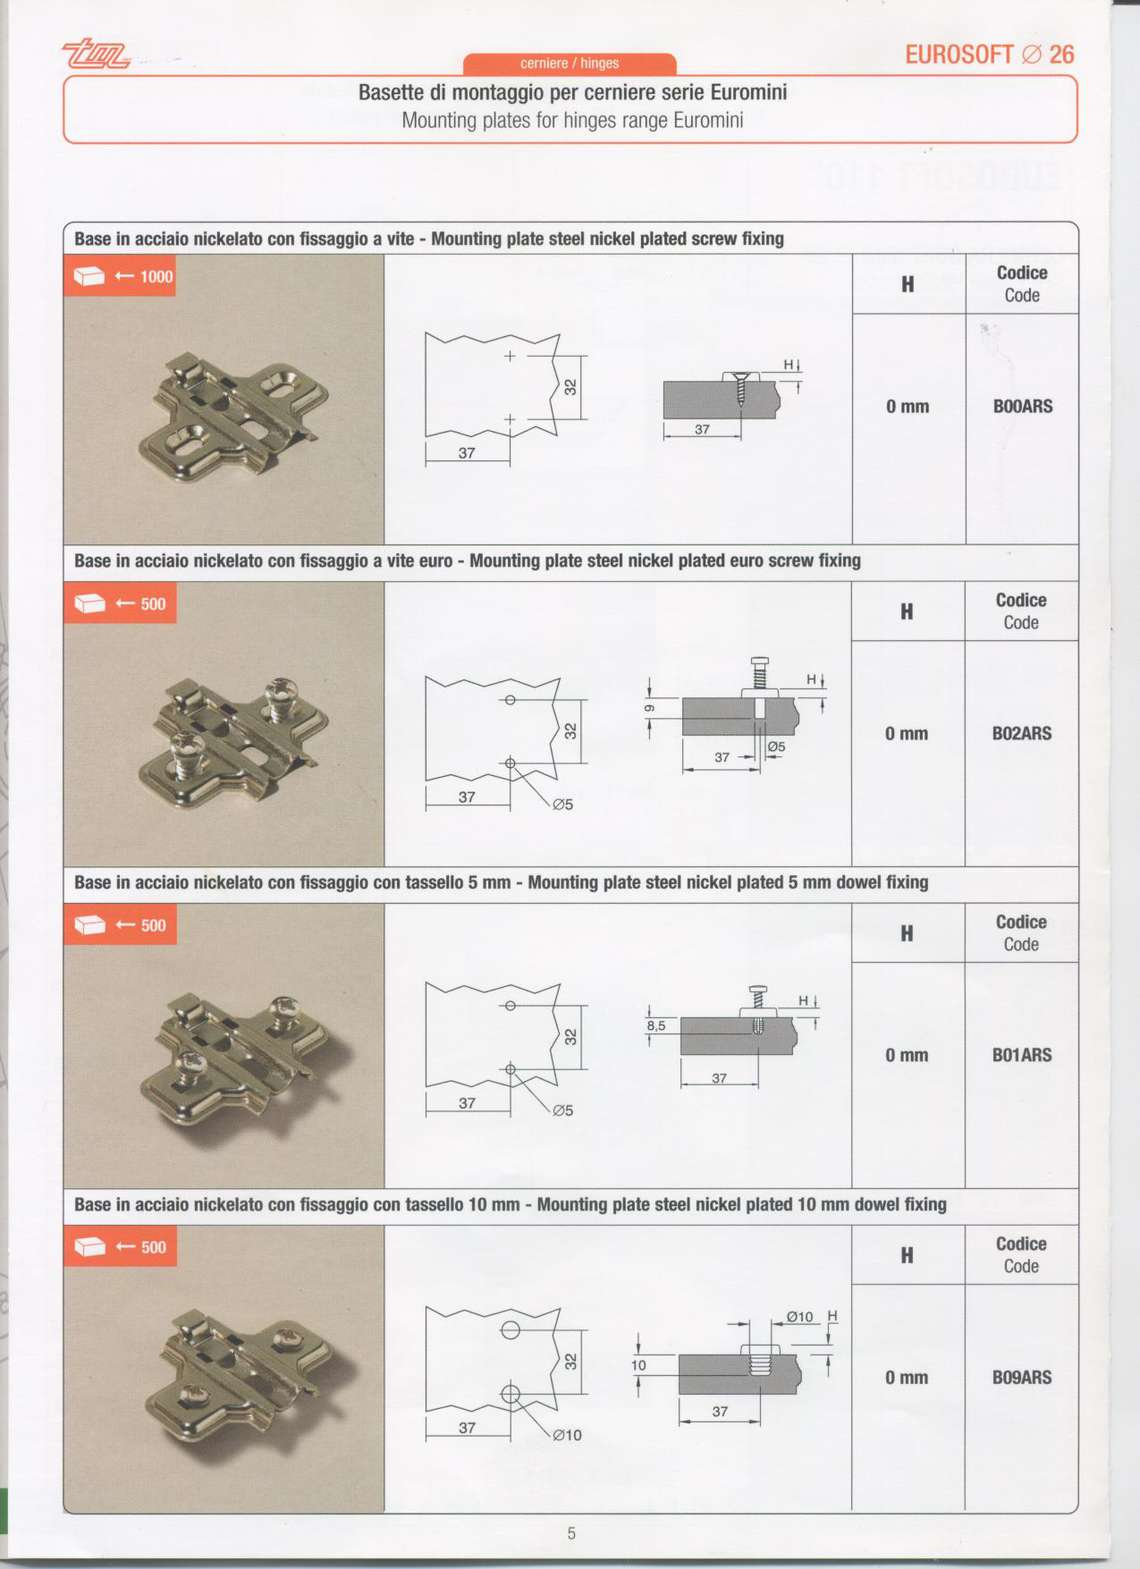 soft-closing-hinges-catalogue_178_003.jpg